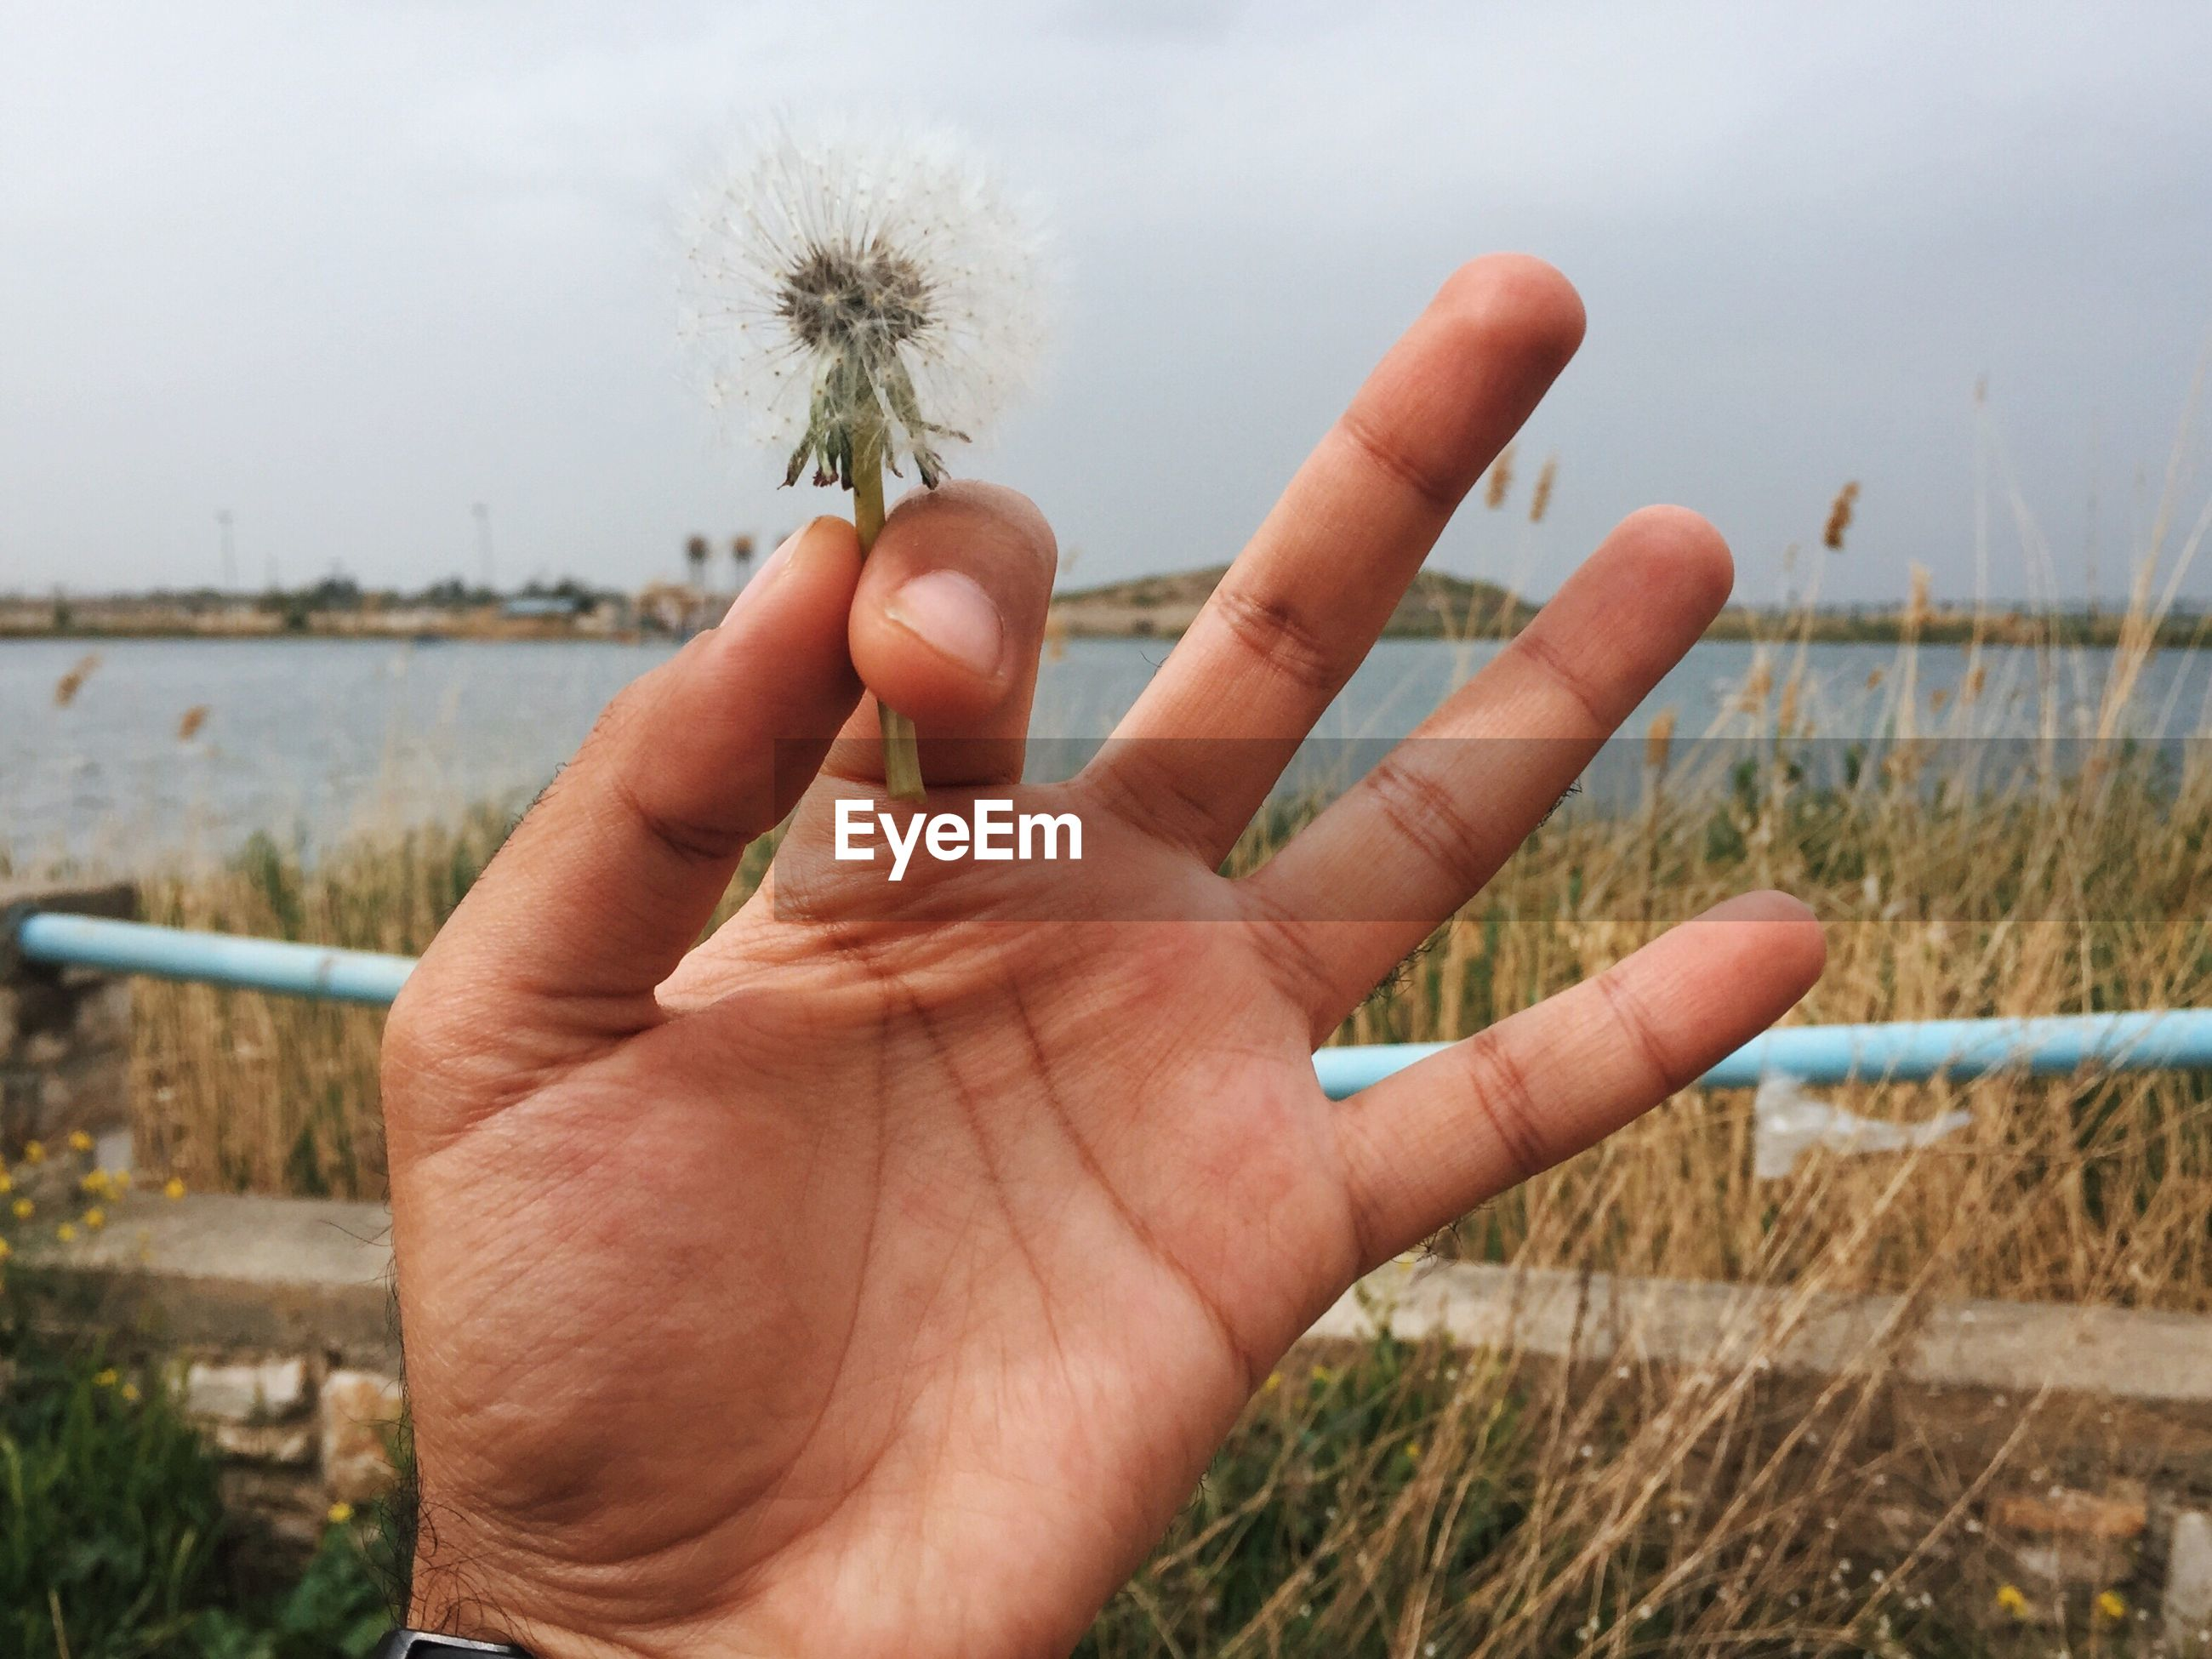 Close-up of hand holding plant by lake against sky